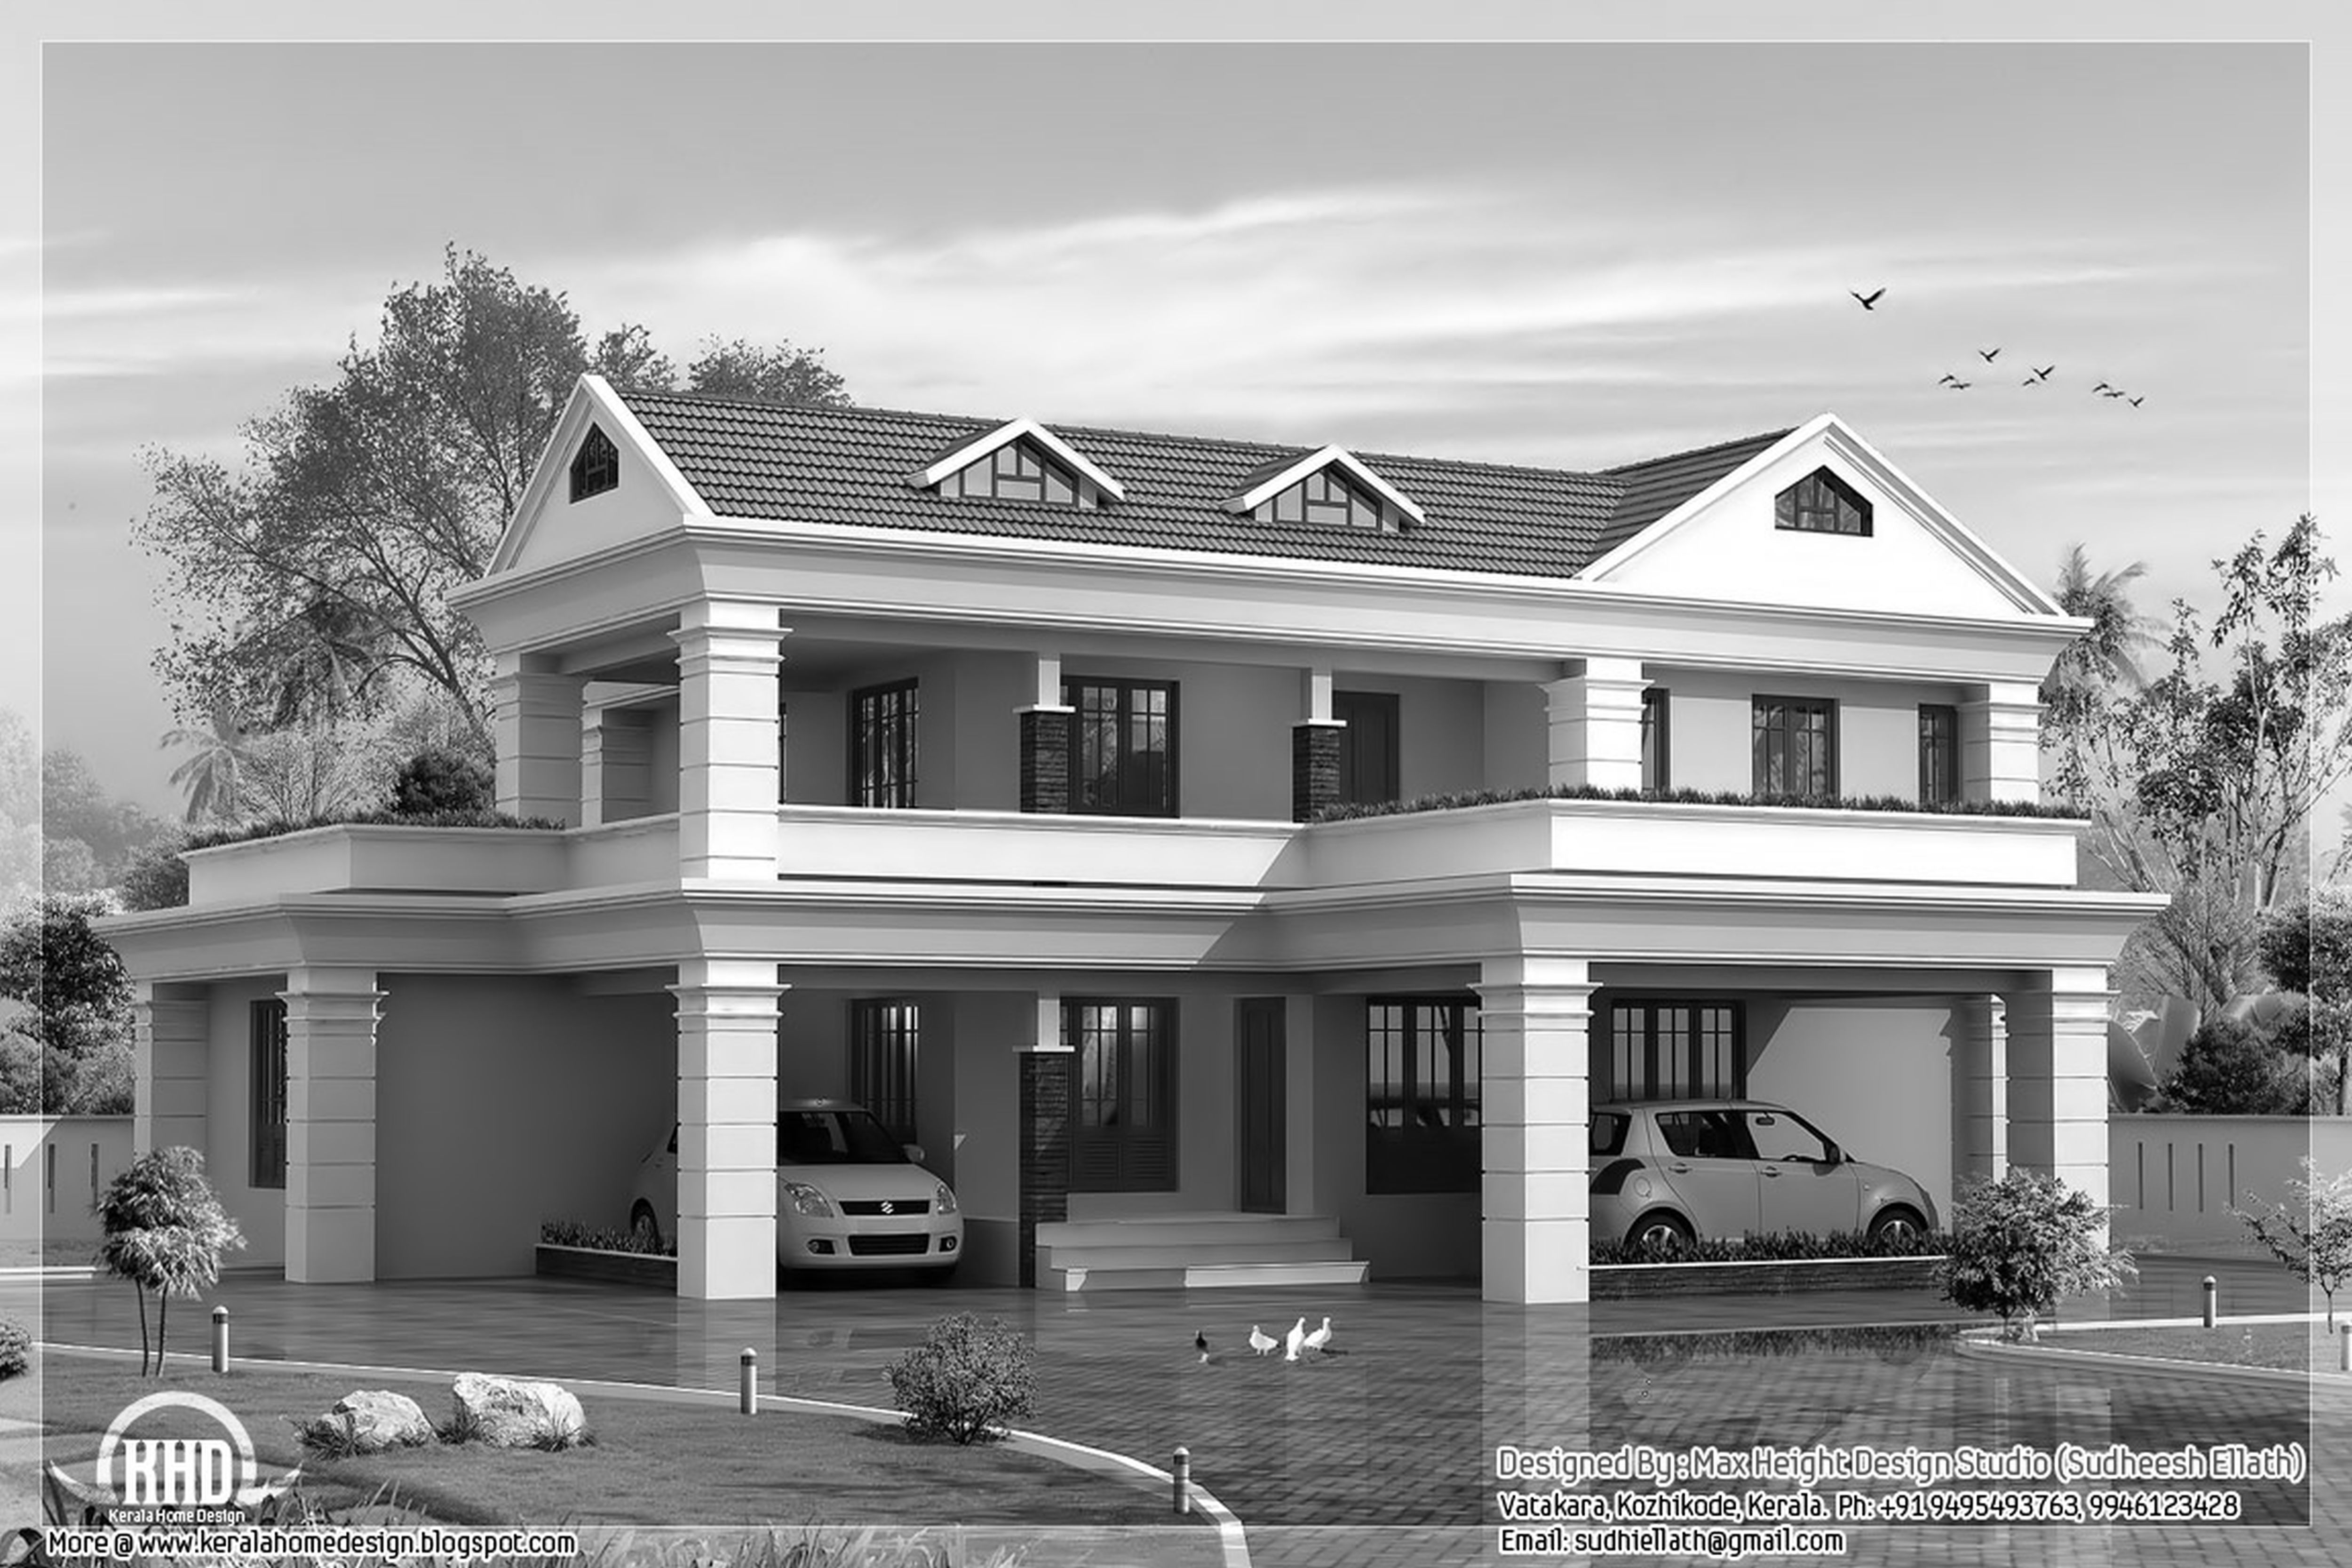 French Style Beach Houses House Plans Charming Small French Country House Plans Modern Style Kerala House Design Beautiful House Plans House Blueprints